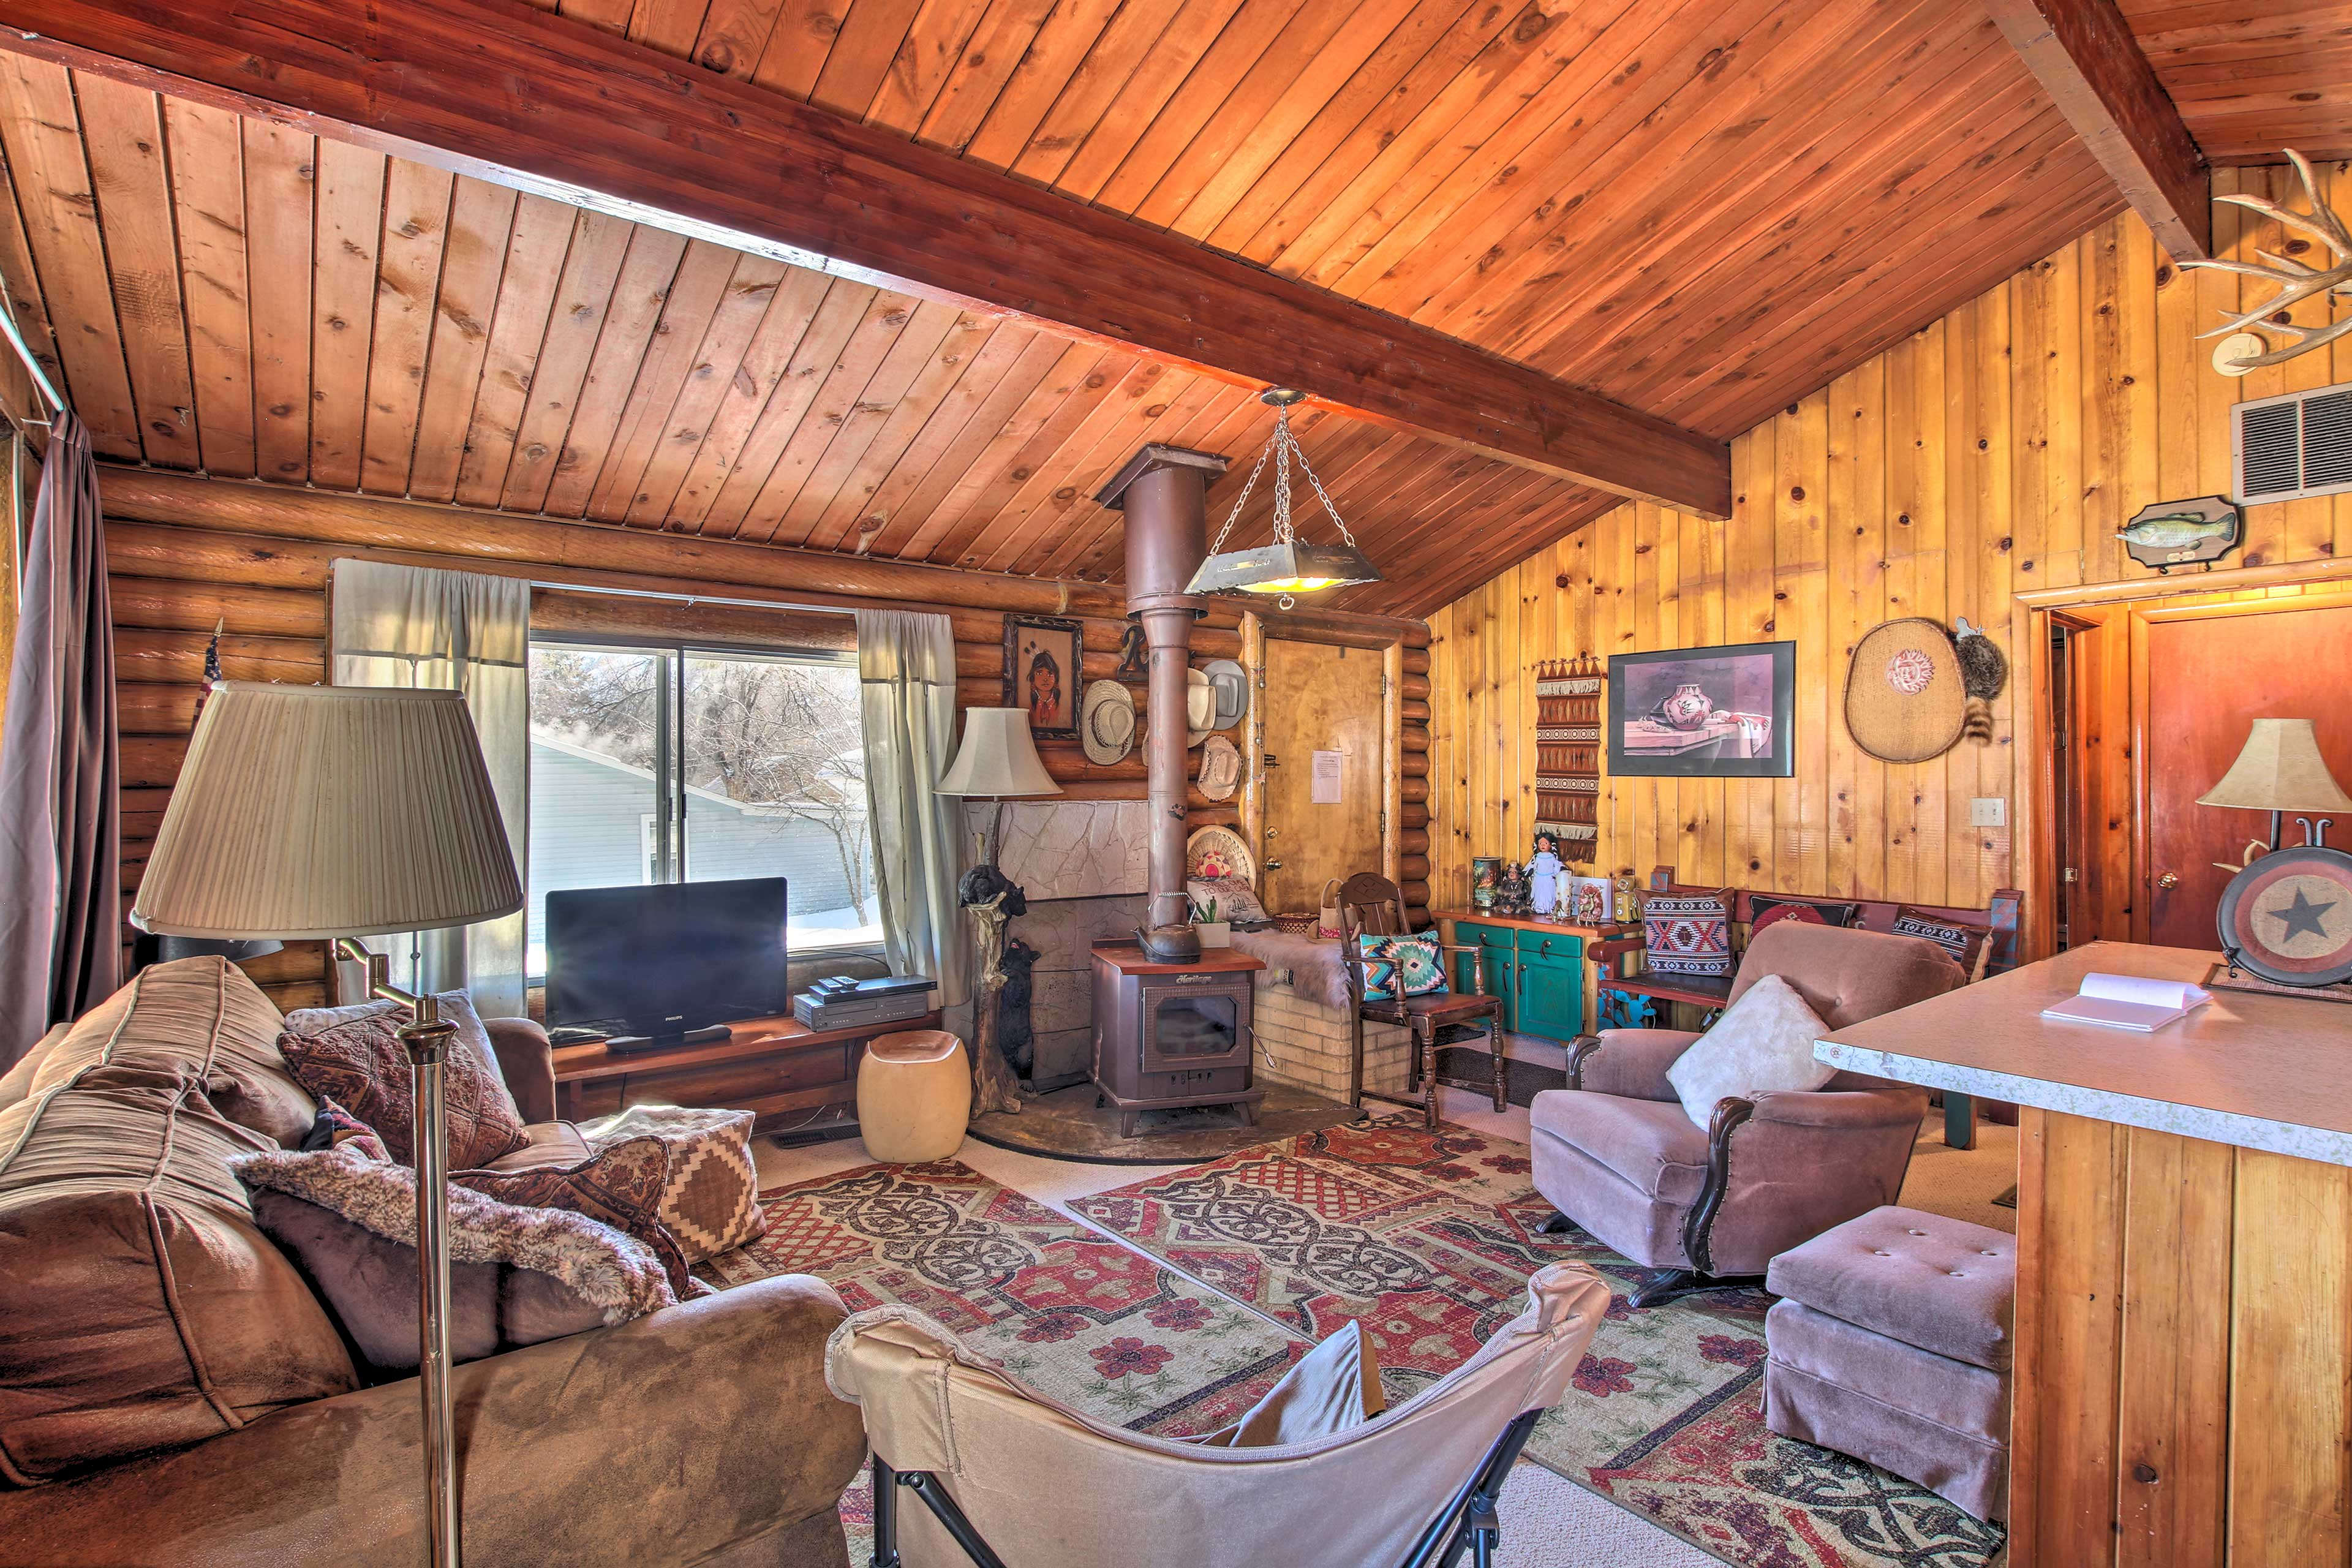 The cozy home has 3 bedrooms, 2 bathrooms, an air mattress, and room for 10.